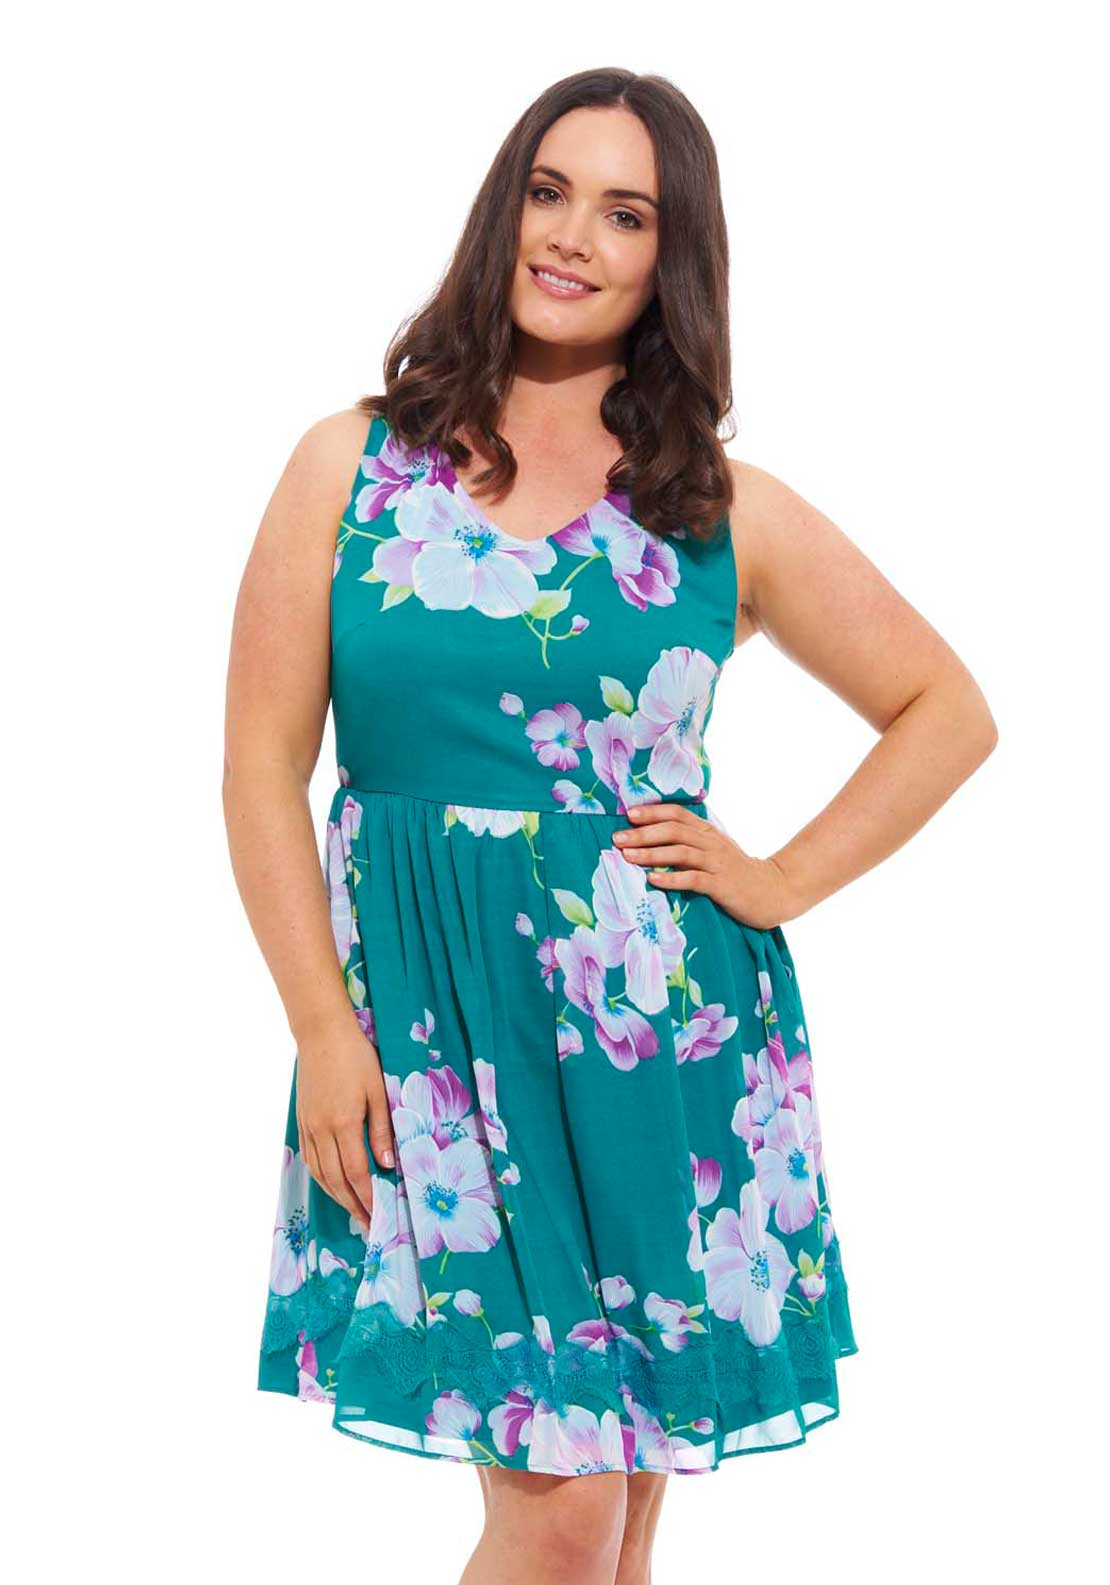 Lovedrobe Floral Print V Neck Skater Dress, Turquoise